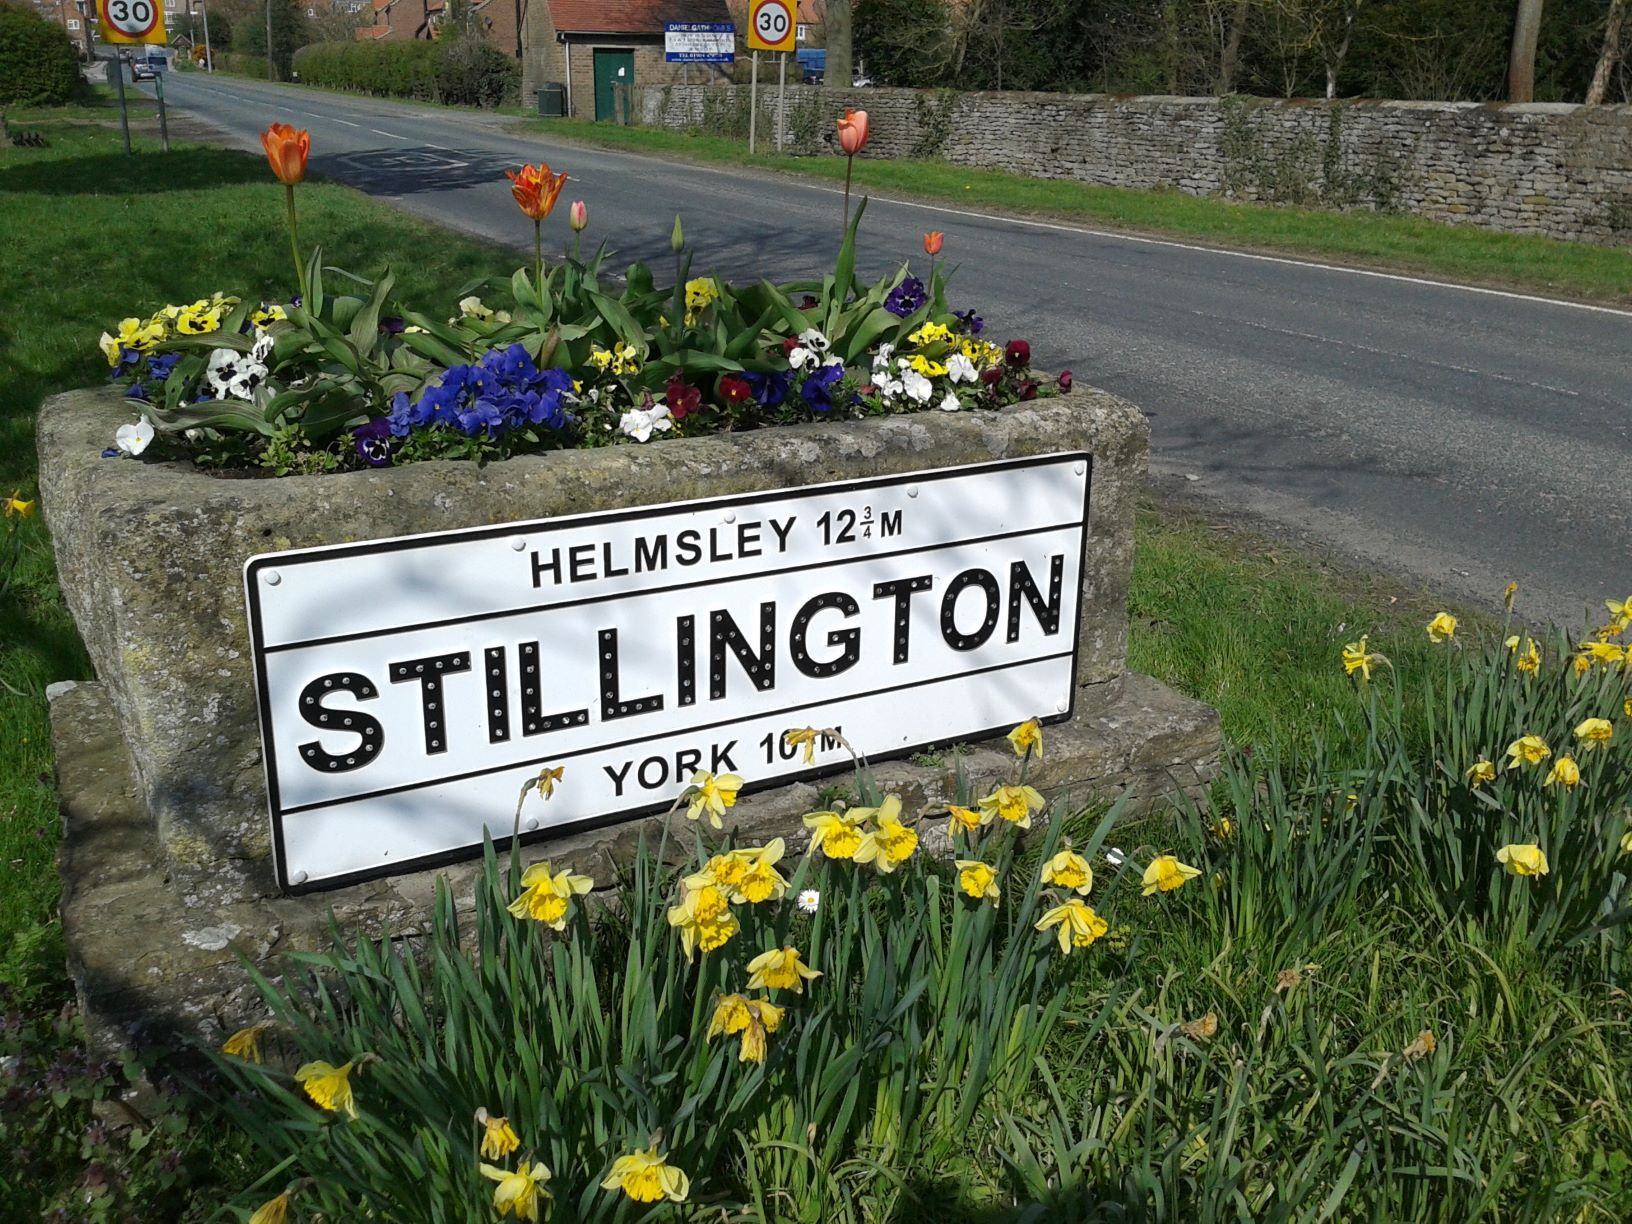 Stillington Village